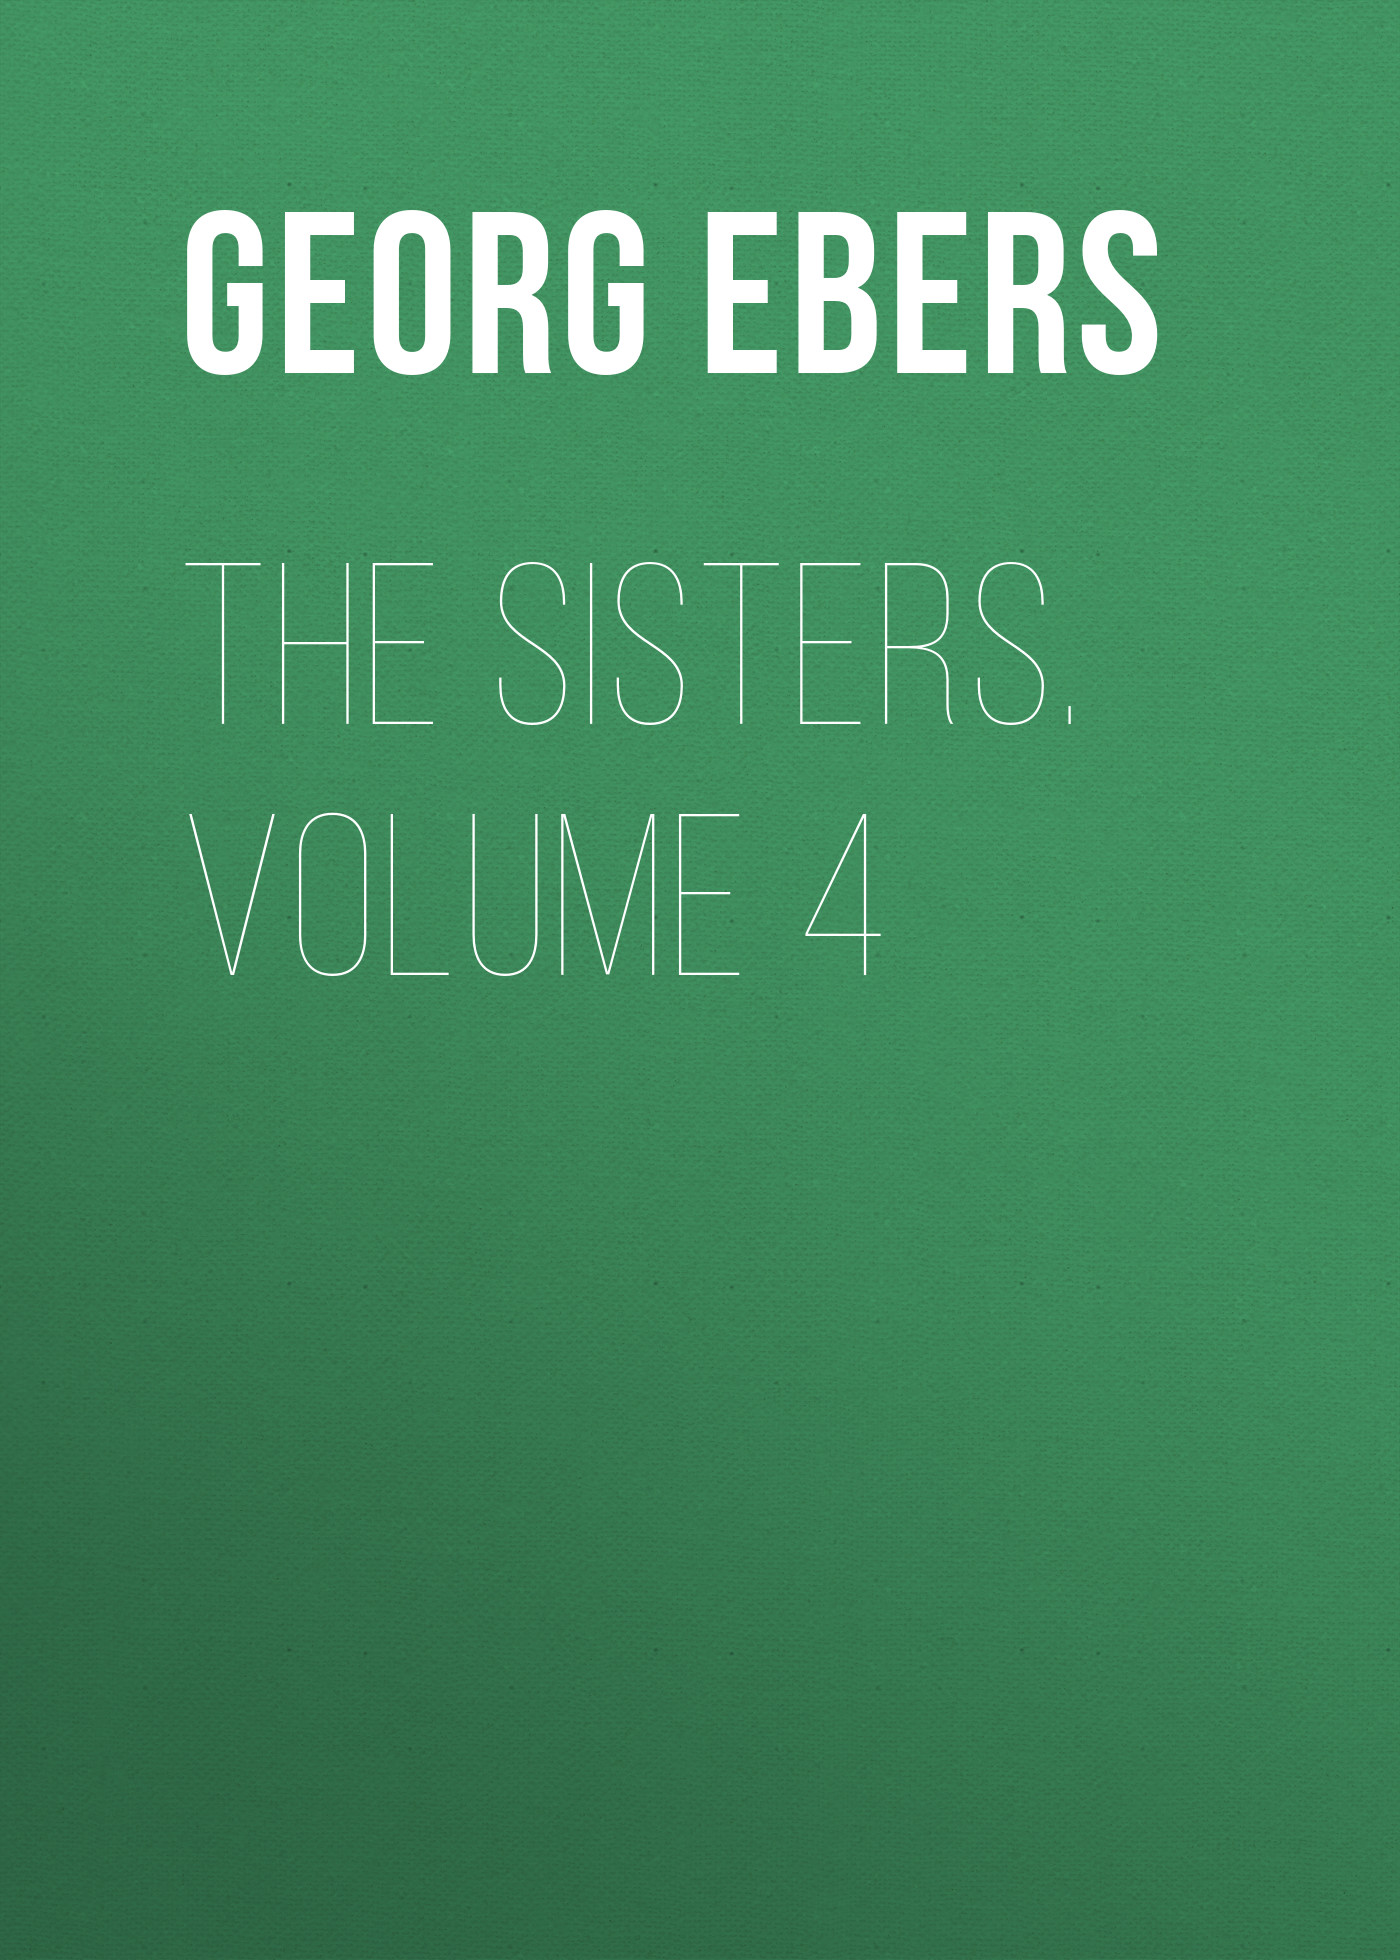 Georg Ebers The Sisters. Volume 4 the strangers volume 4